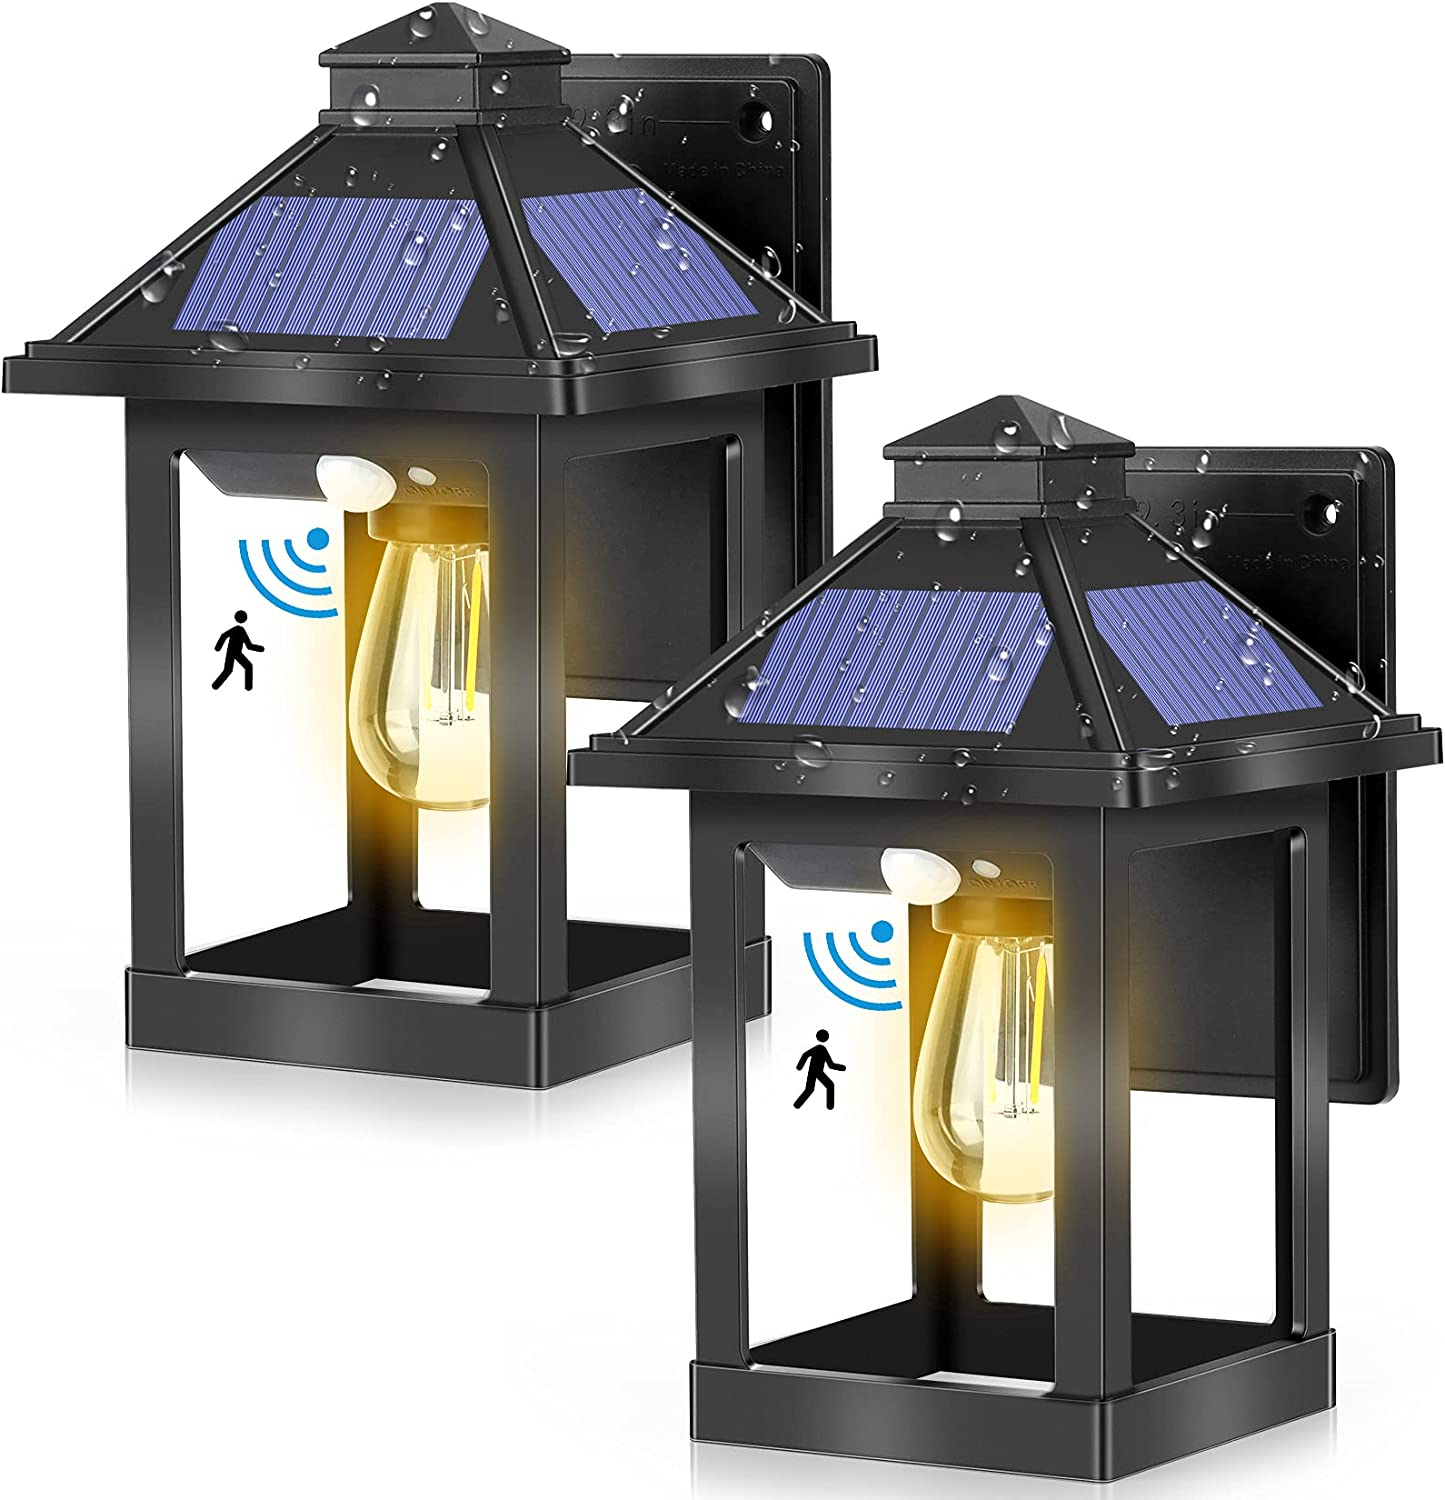 Max 89% OFF 2 Pack Solar Outdoor Wall Lanterns with Sensor Upgrade D Motion Detroit Mall